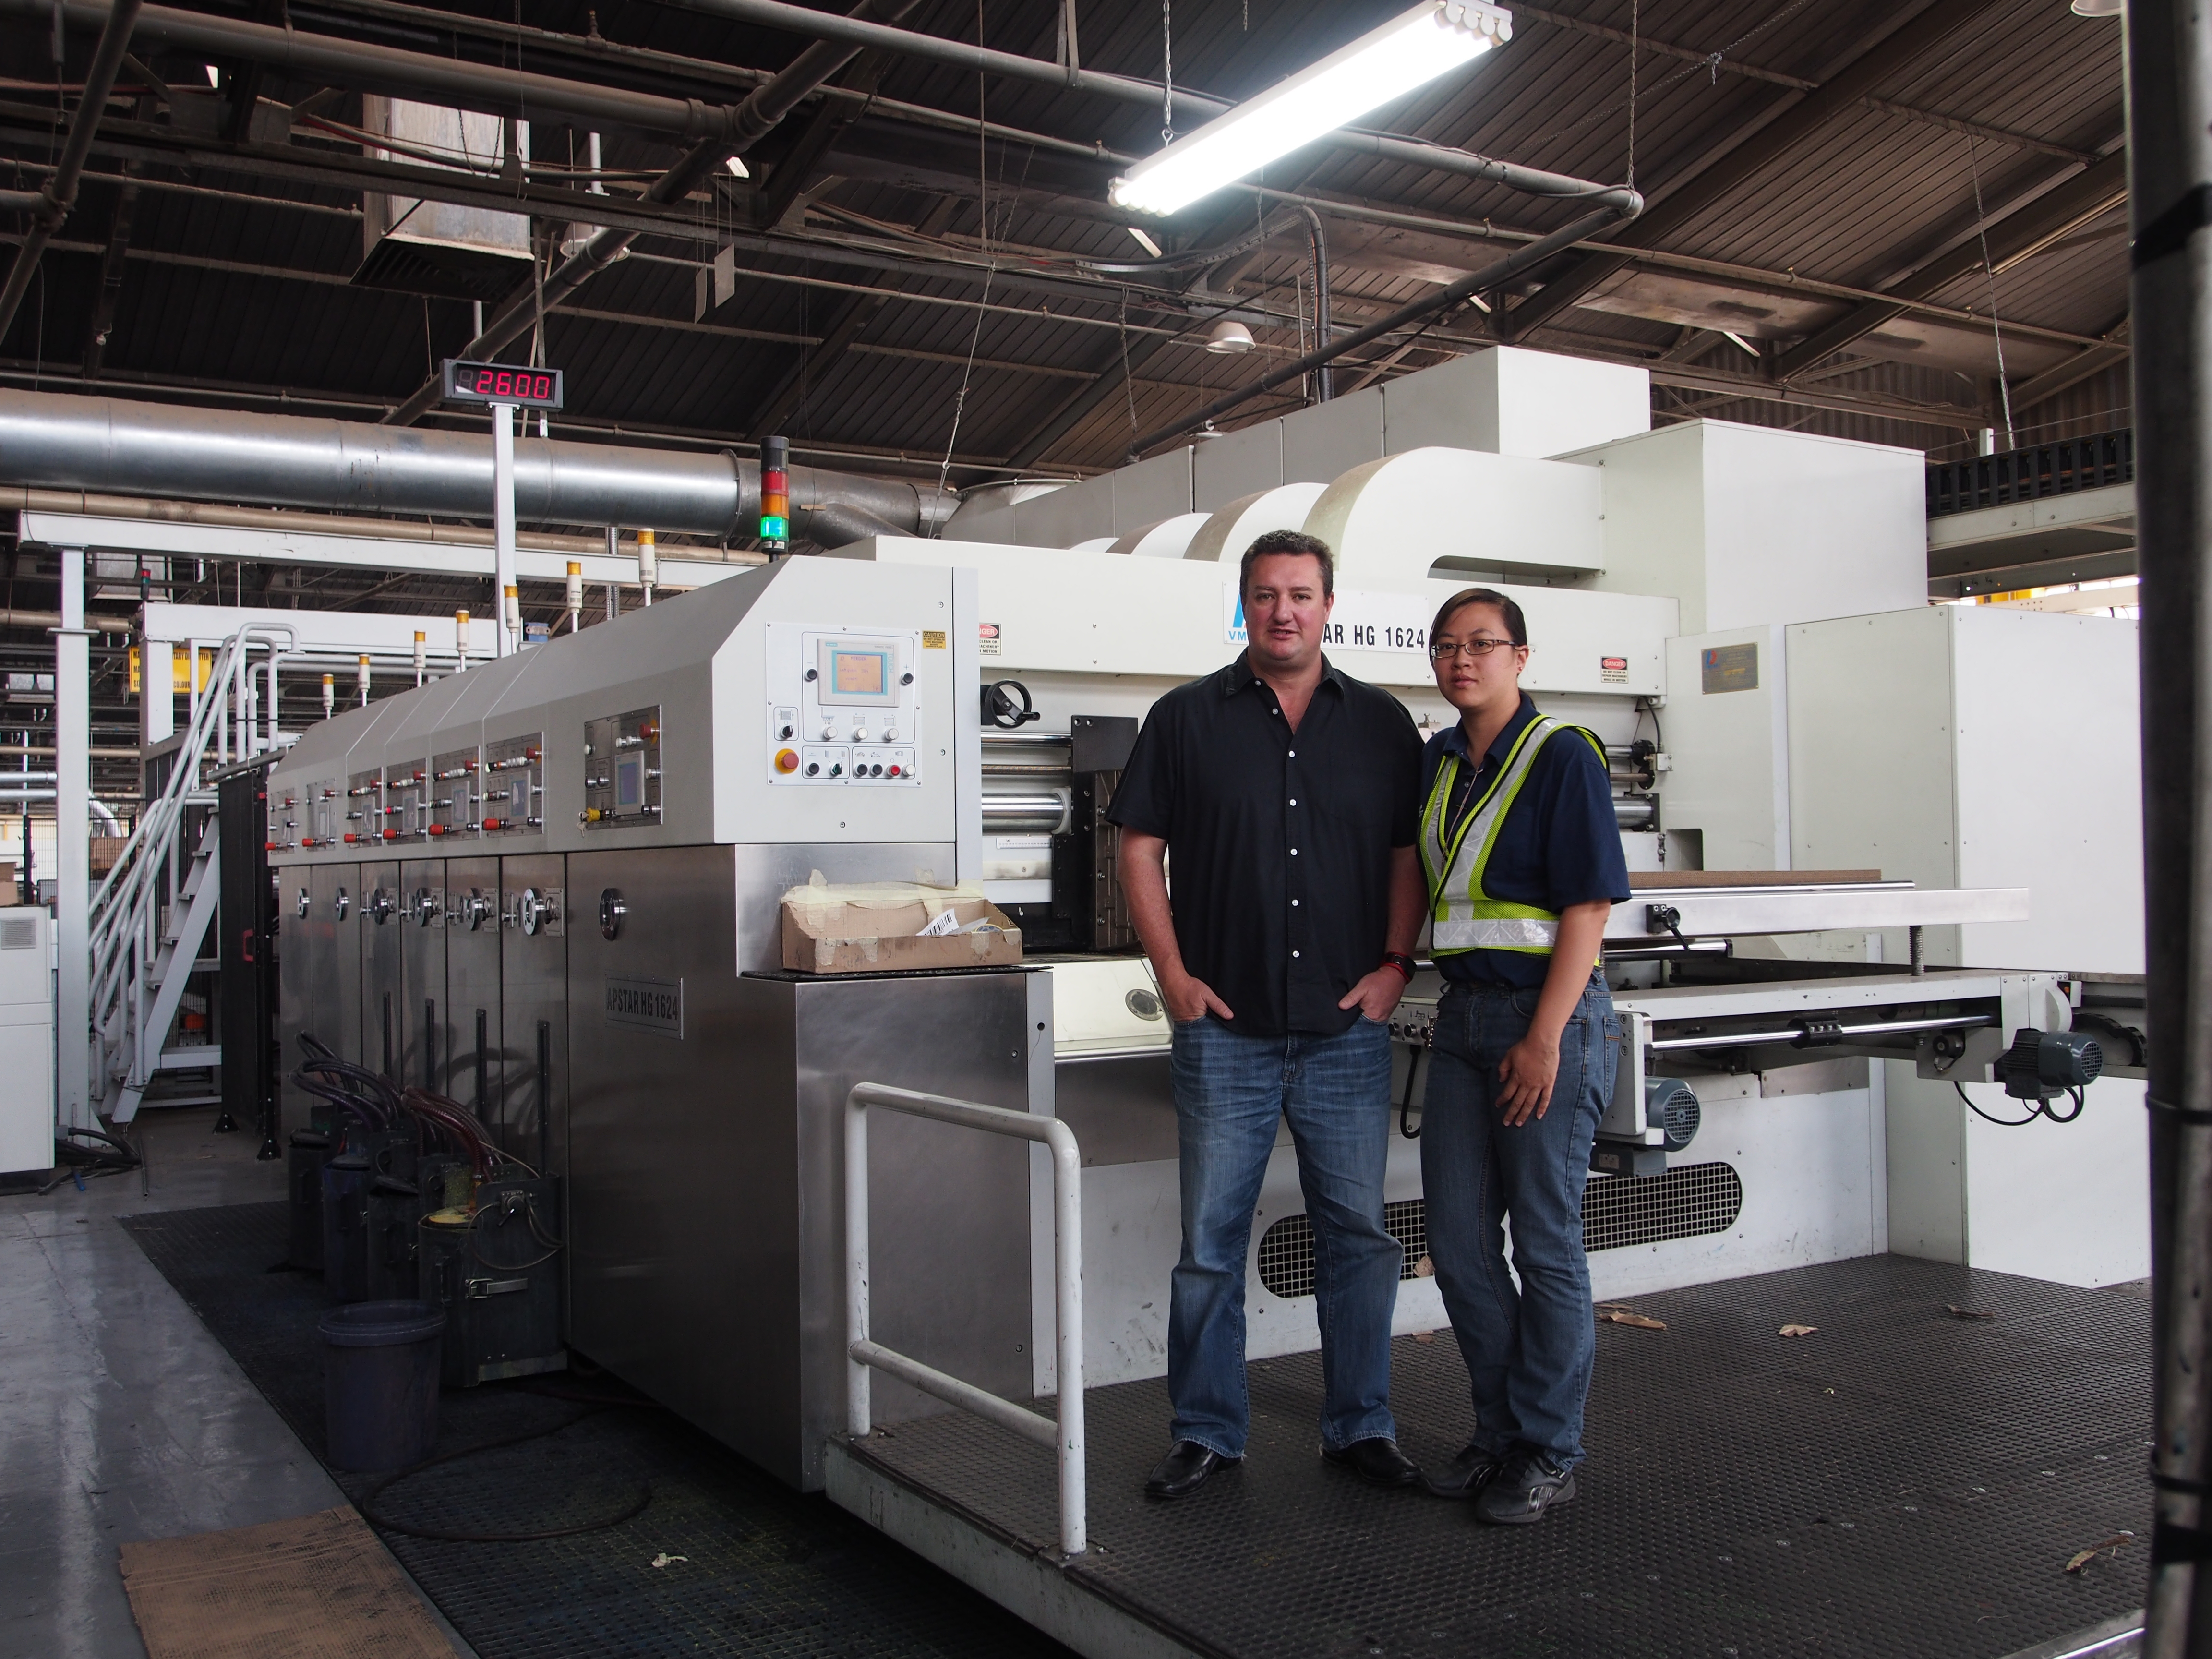 General Manager, Ryan Swan with Goettsch Technician, Jessica Zhang with Box Lee's New Dong Fang Apstar HG 1624